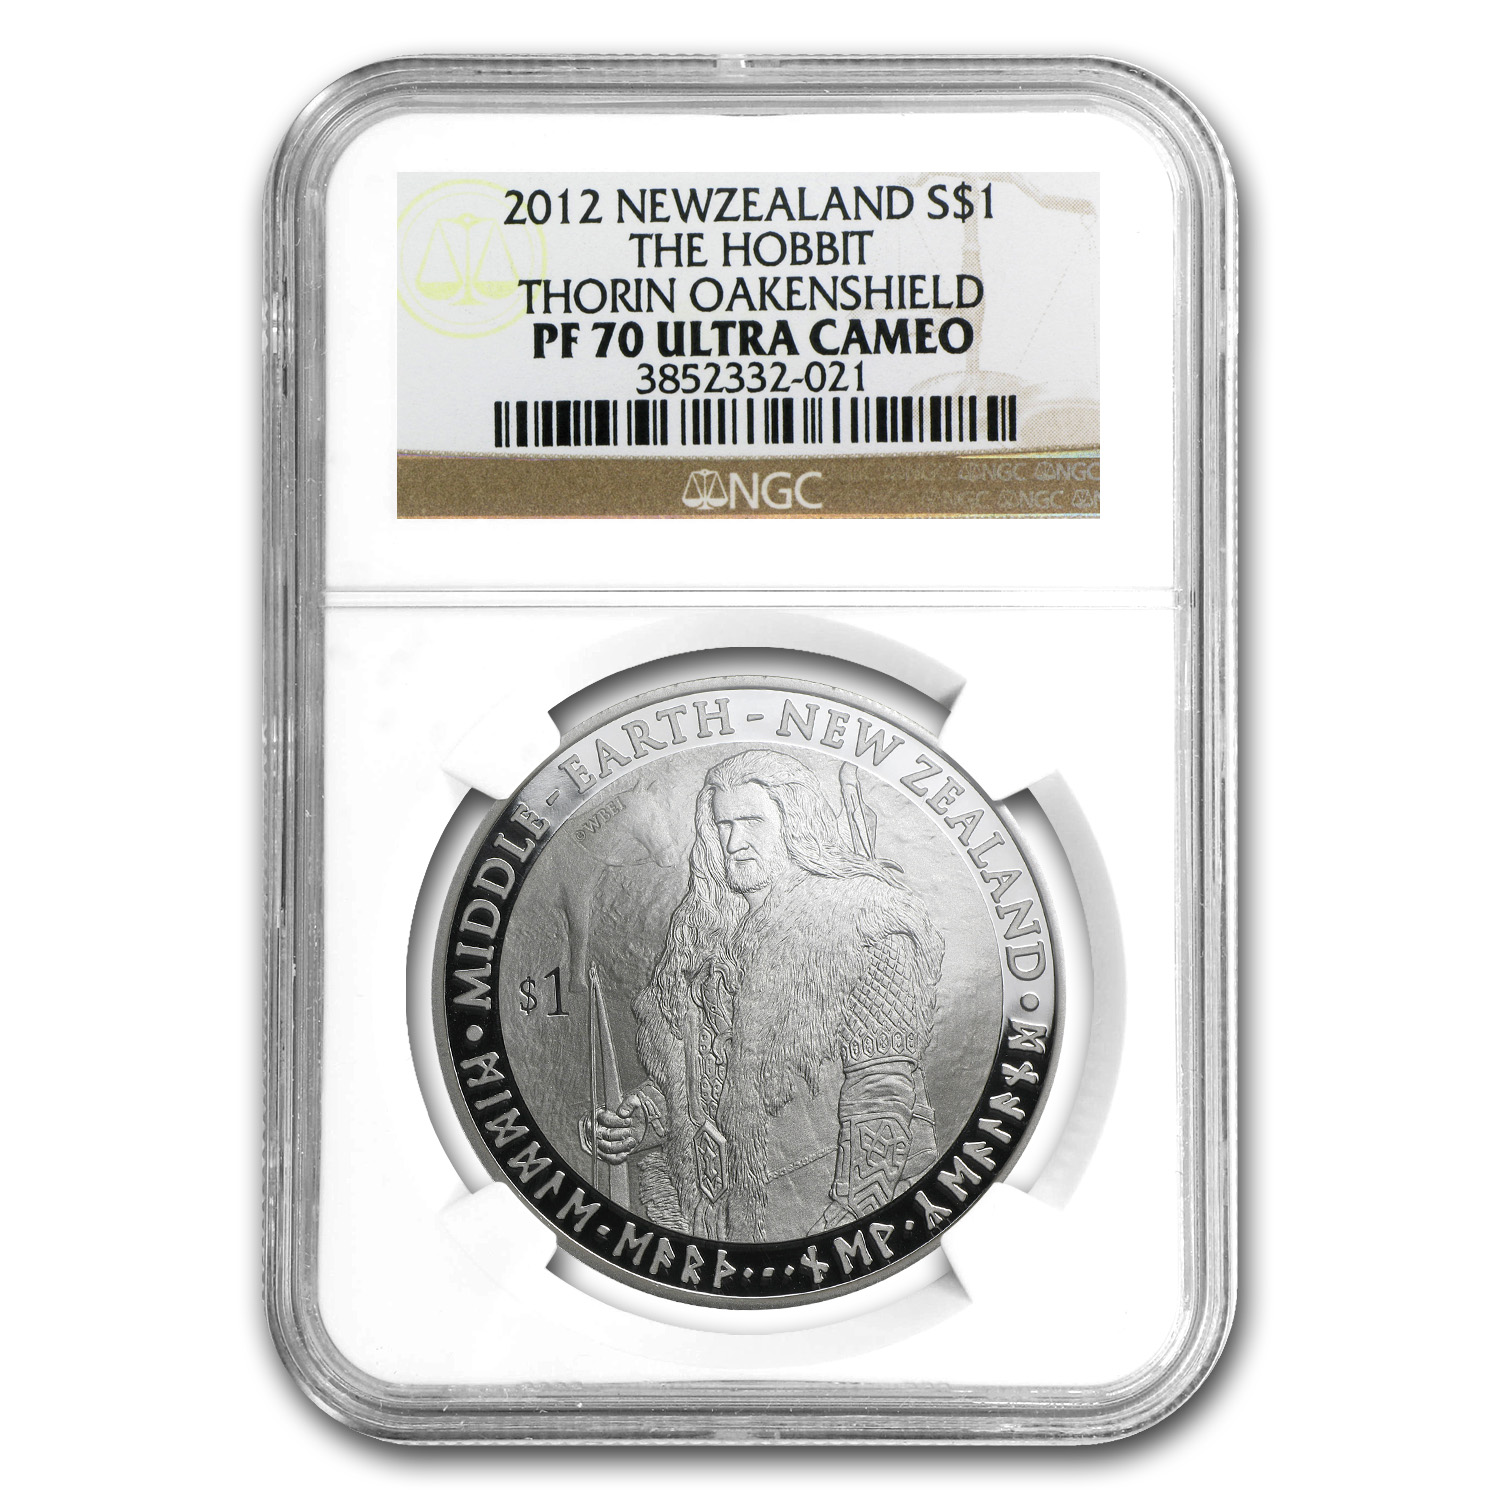 2012 New Zealand 1 oz Silver $1 Thorin Oakenshield PF-70 NGC